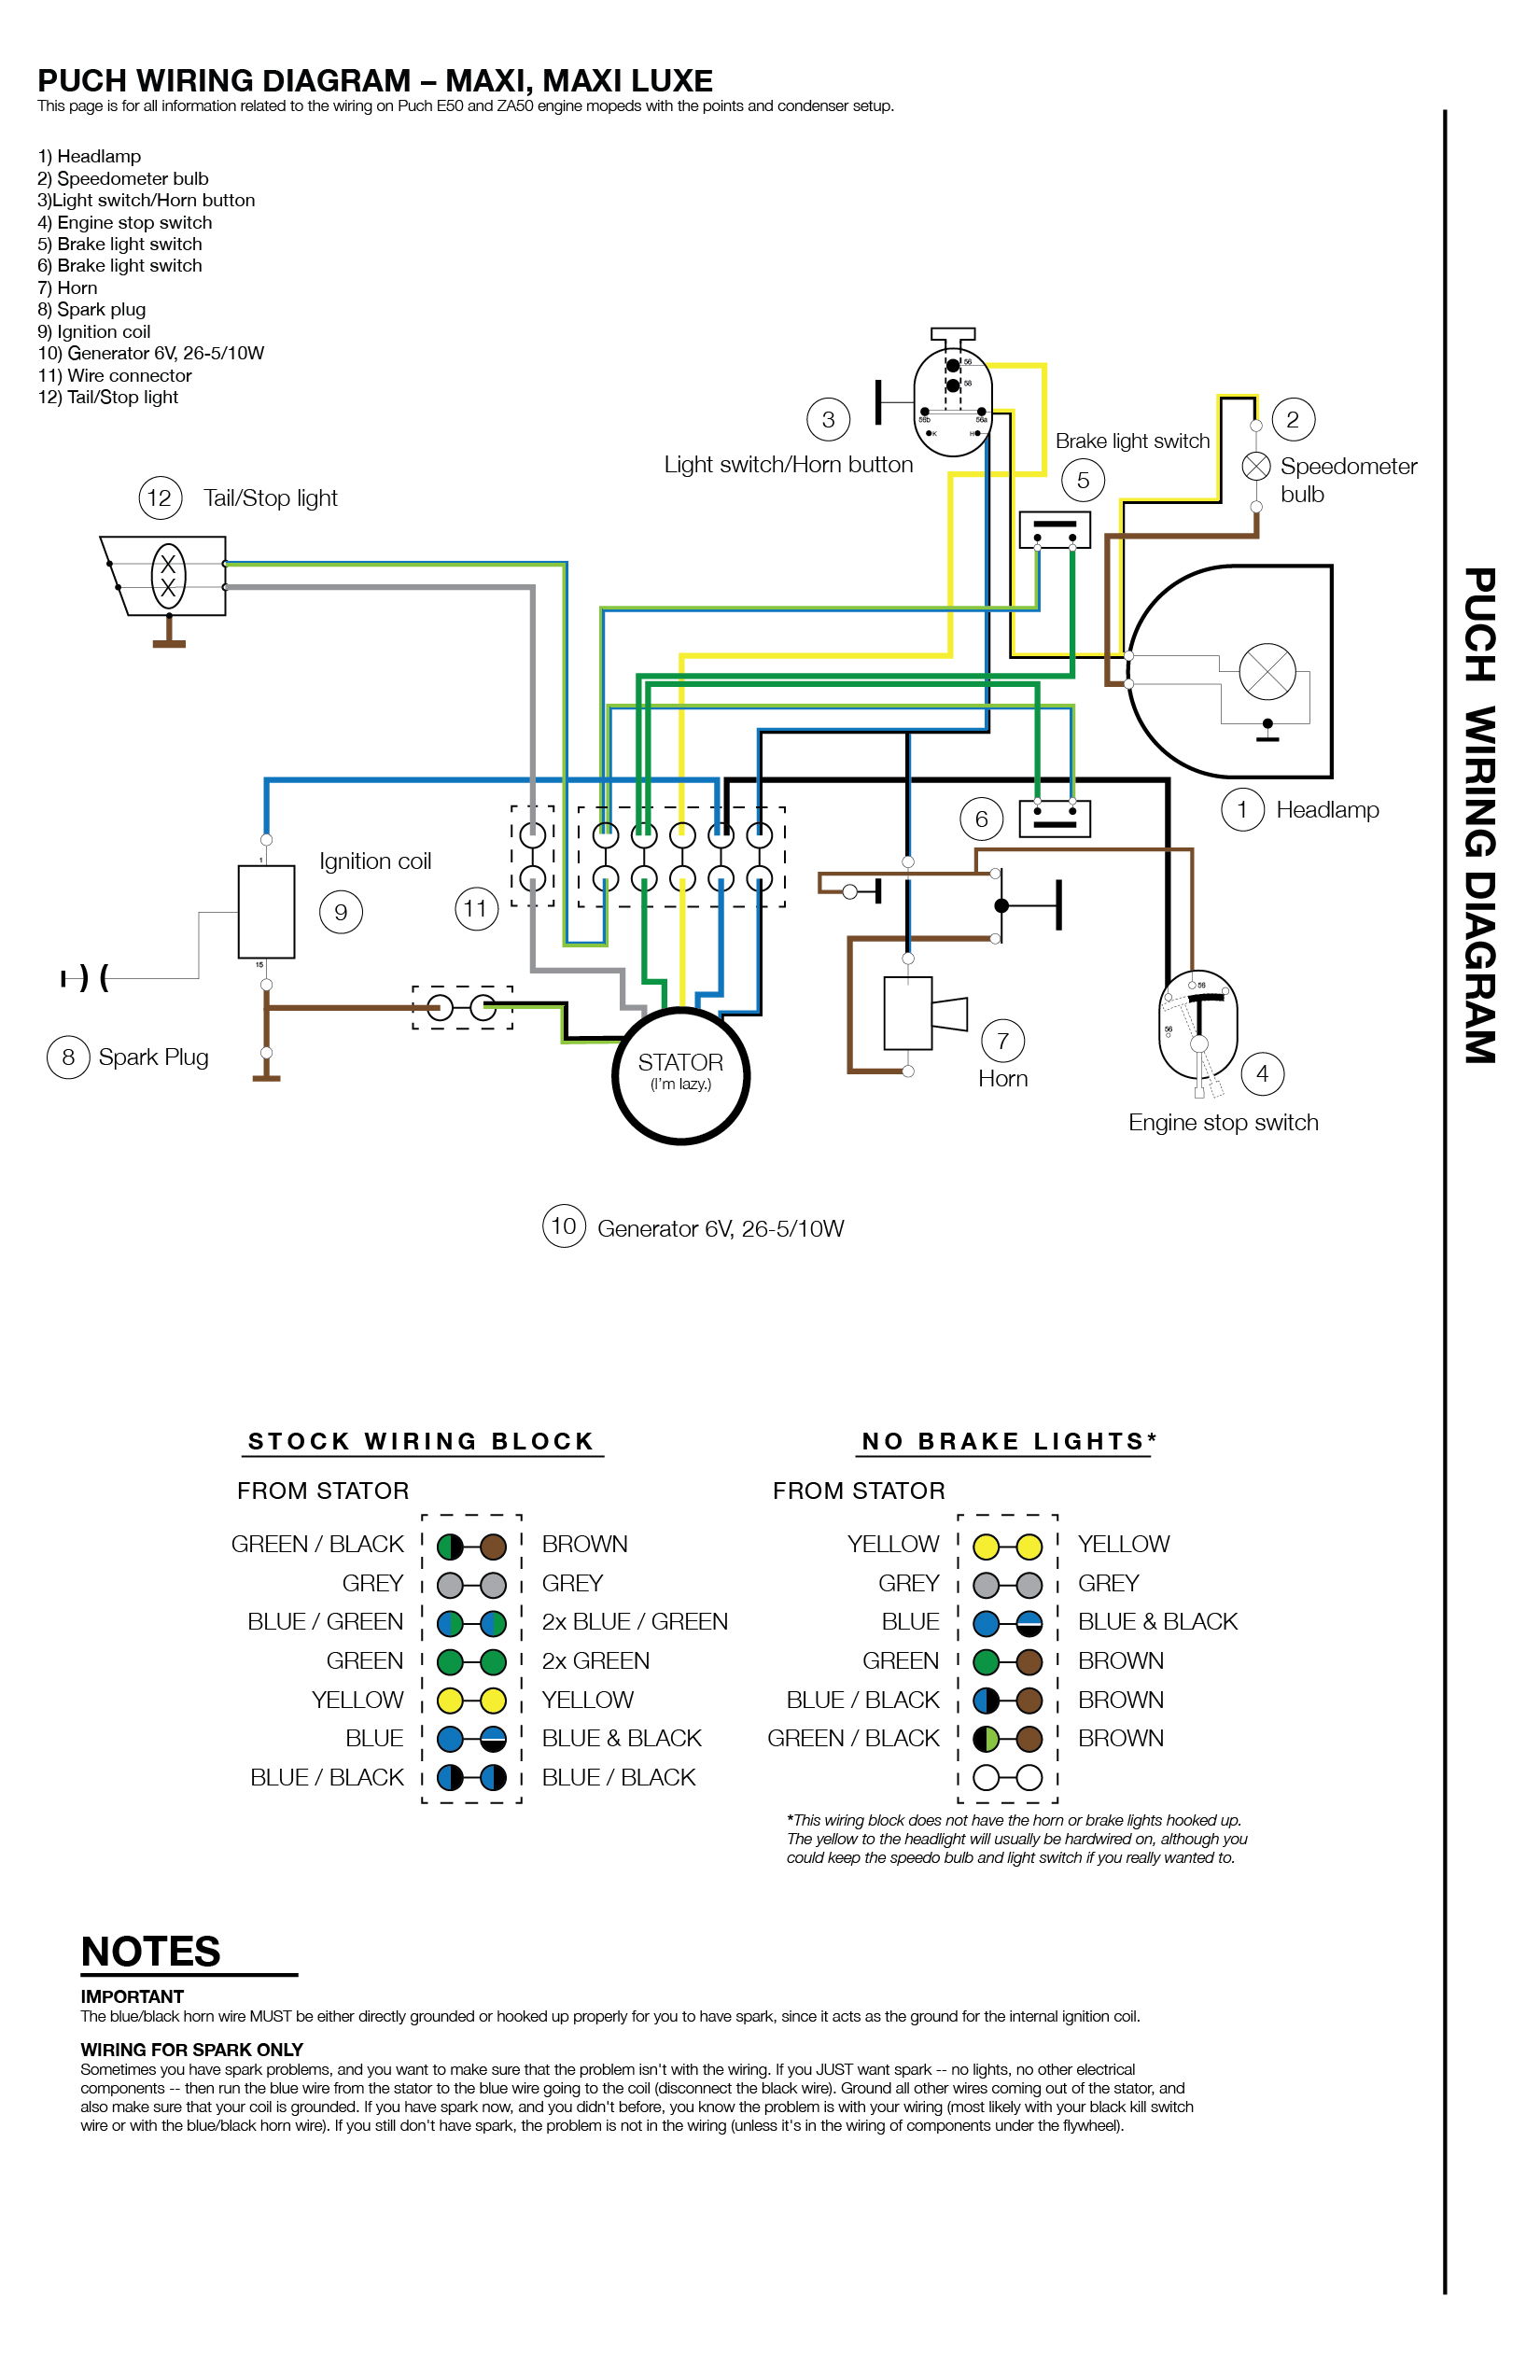 Puch_wiring 02 puch wiring moped wiki 49Cc Scooter Wiring Diagram at mifinder.co